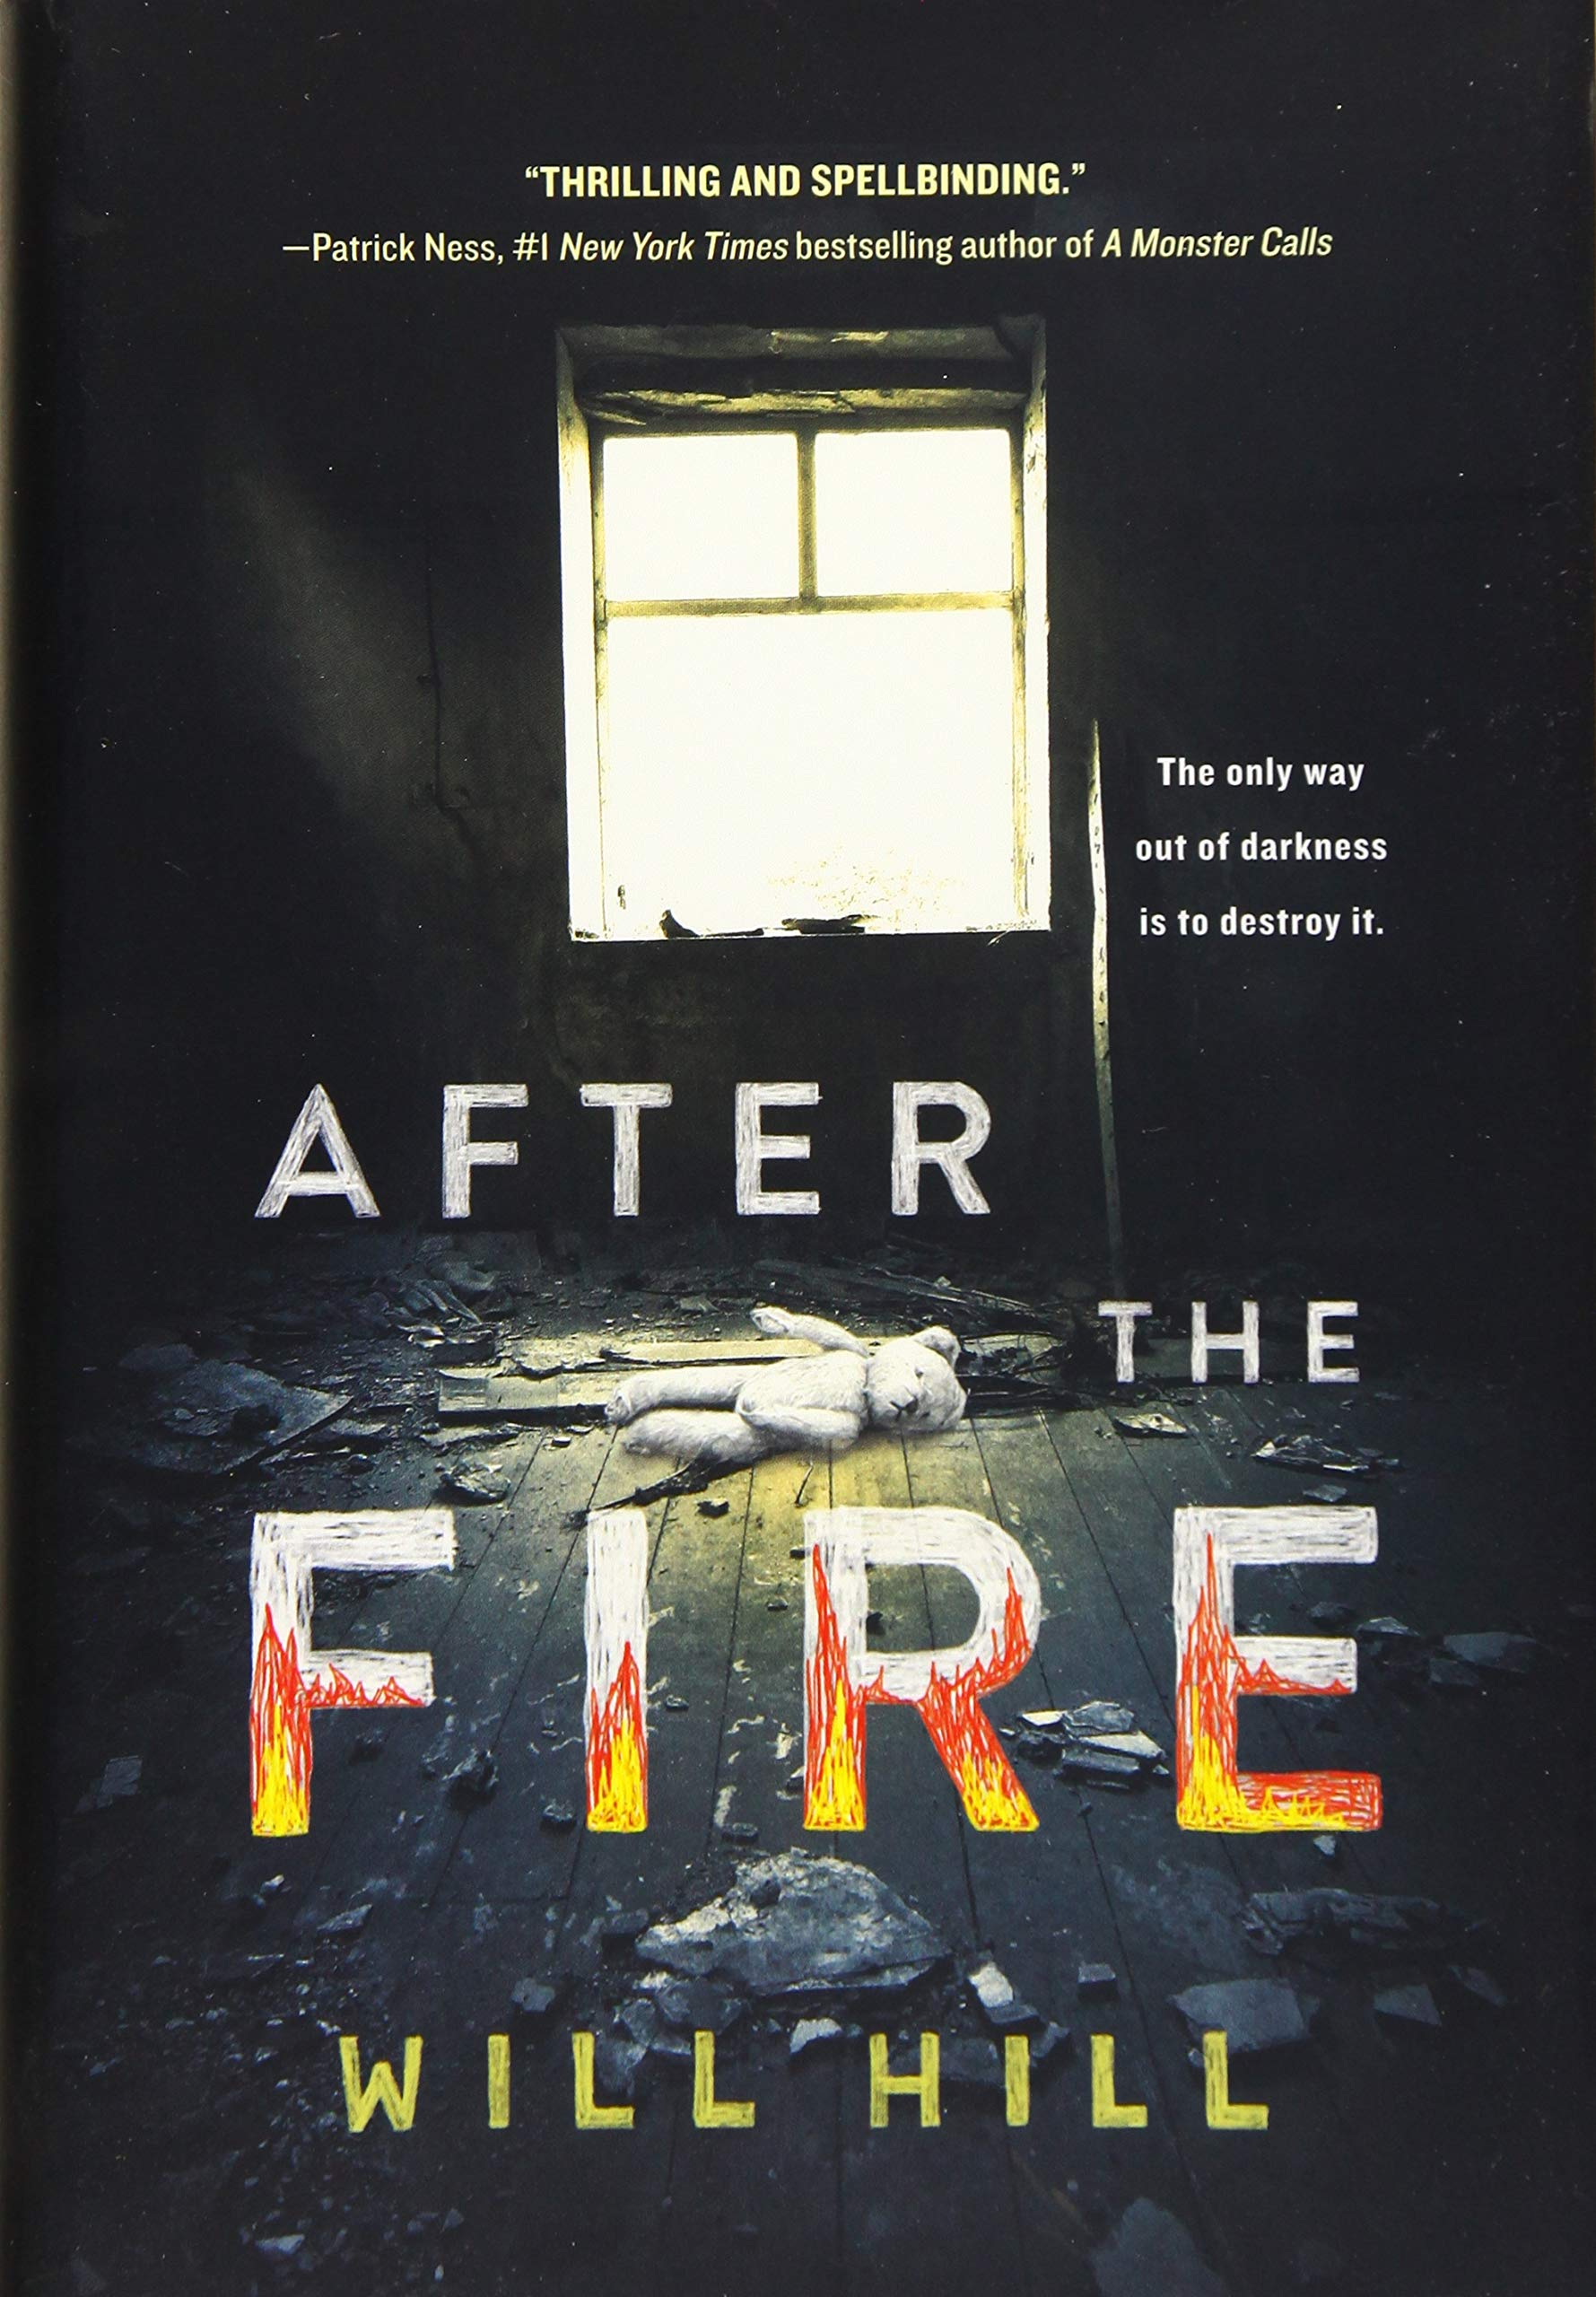 Amazon.com: After the Fire (9781492669791): Hill, Will: Books